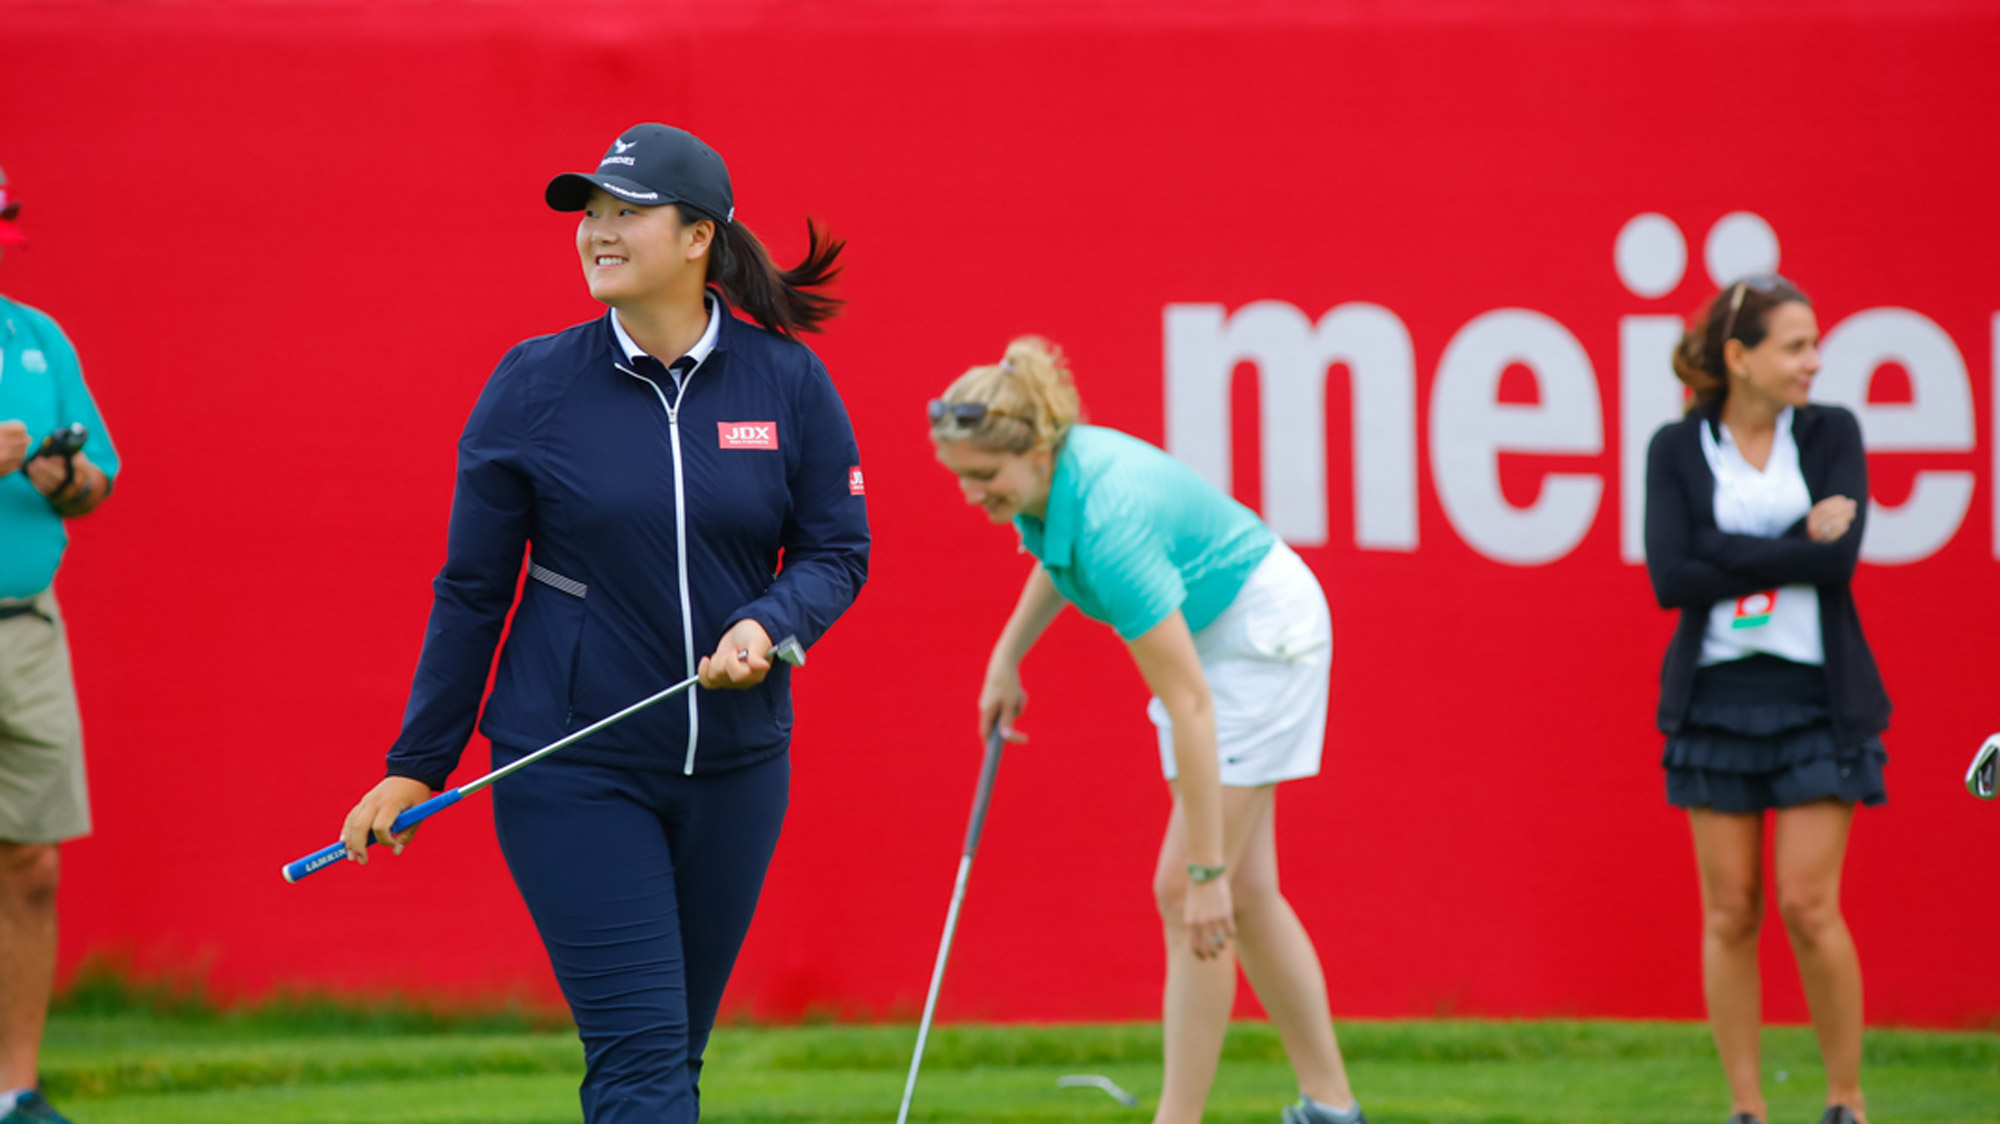 Angel Yin During the Pro-Am at the Meijer LPGA Classic